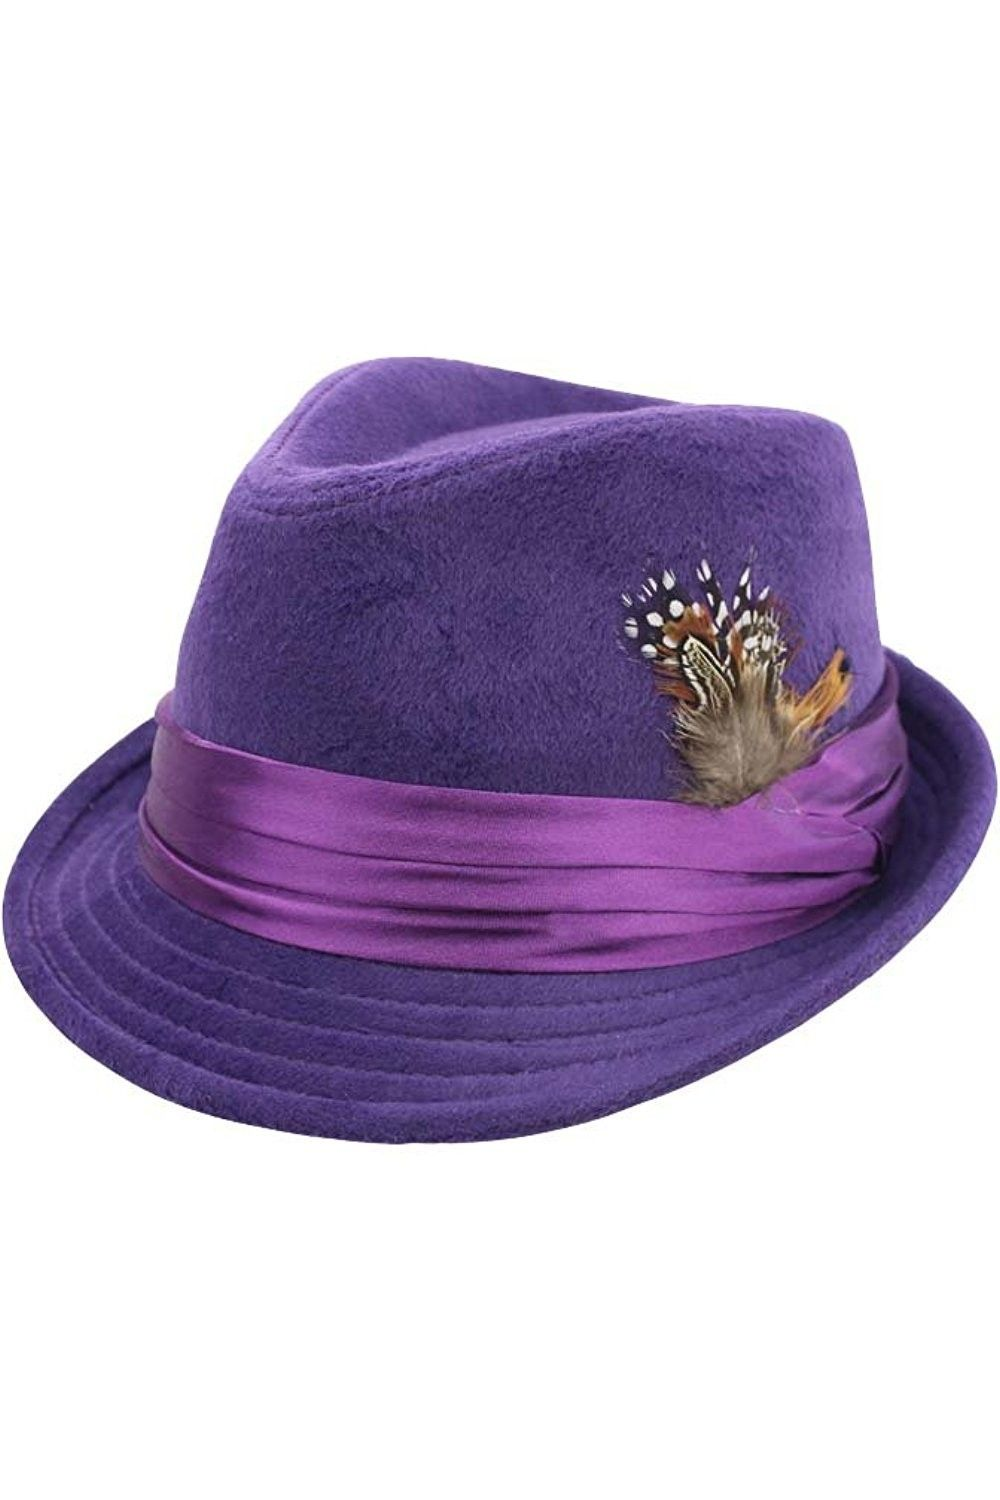 7ee692dfc78 Purple Wool Felt Fedora Hat With Feather Trim - CT17YLQT78G - Hats   Caps